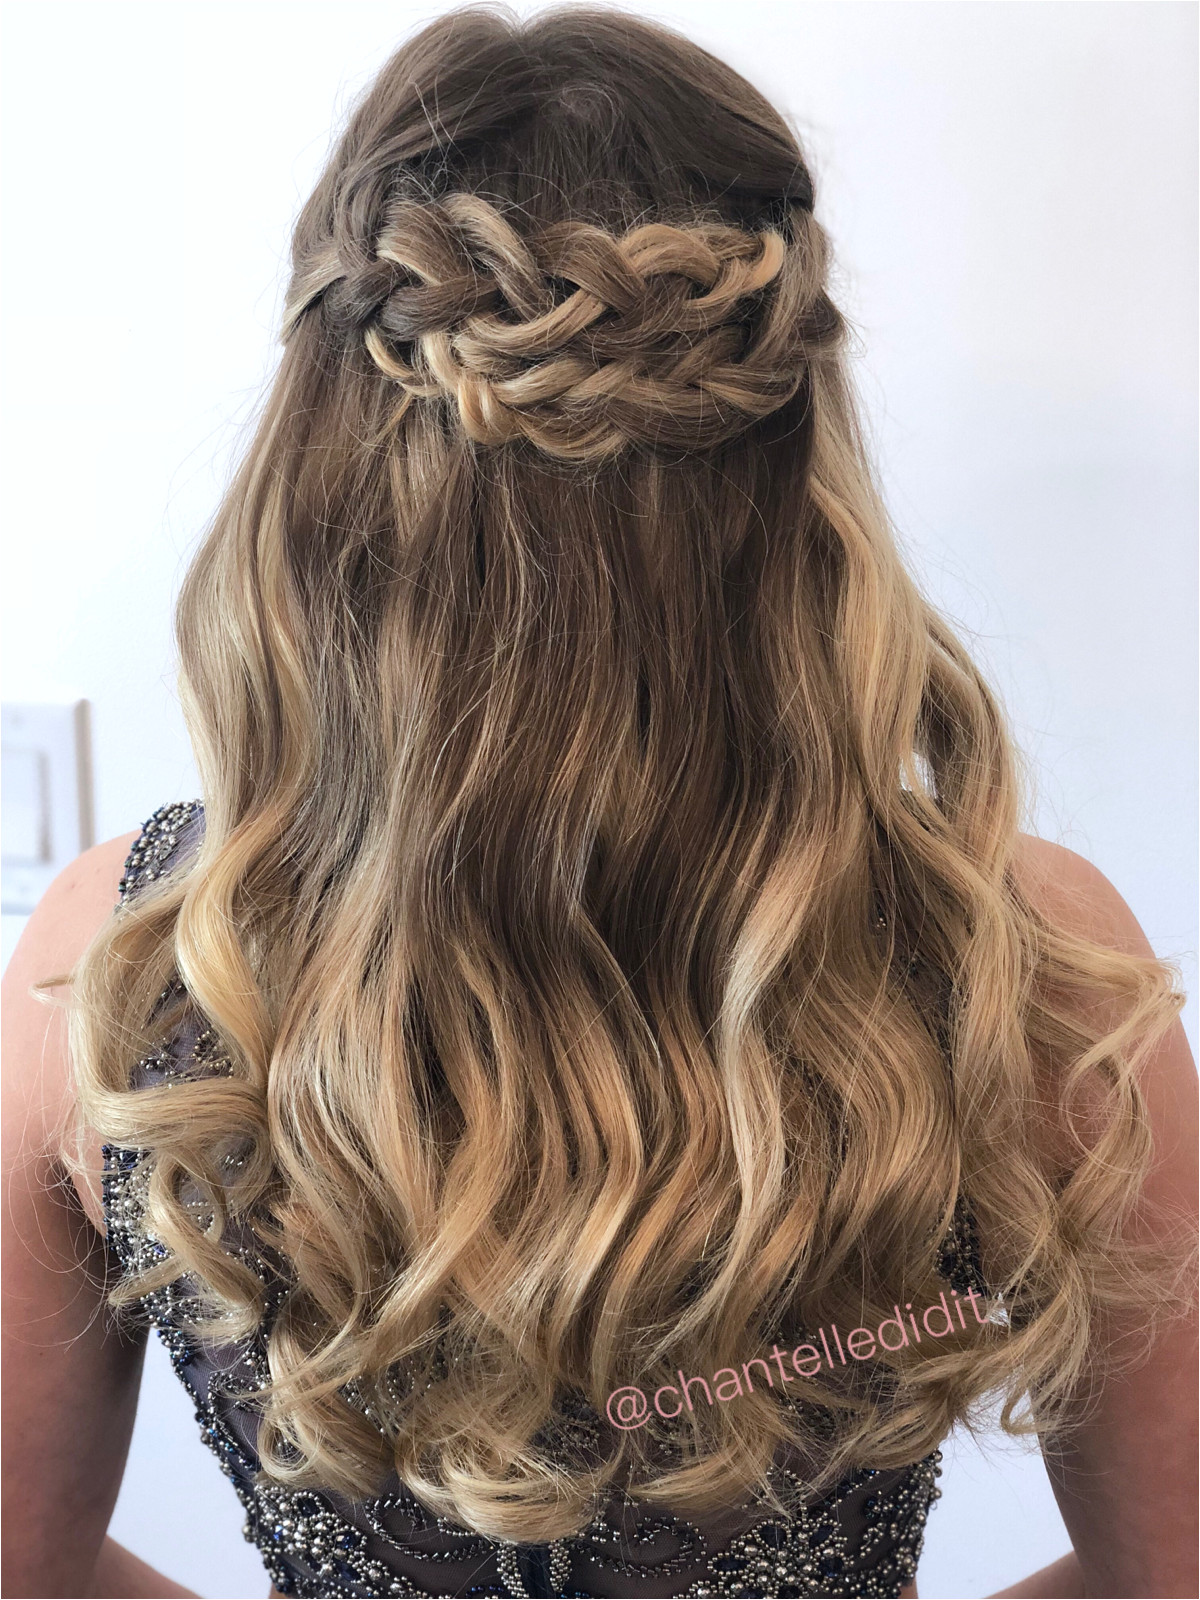 Loose Curls Hairstyles Pinterest soft Romantic Half Updo with Braids and Loose Curls